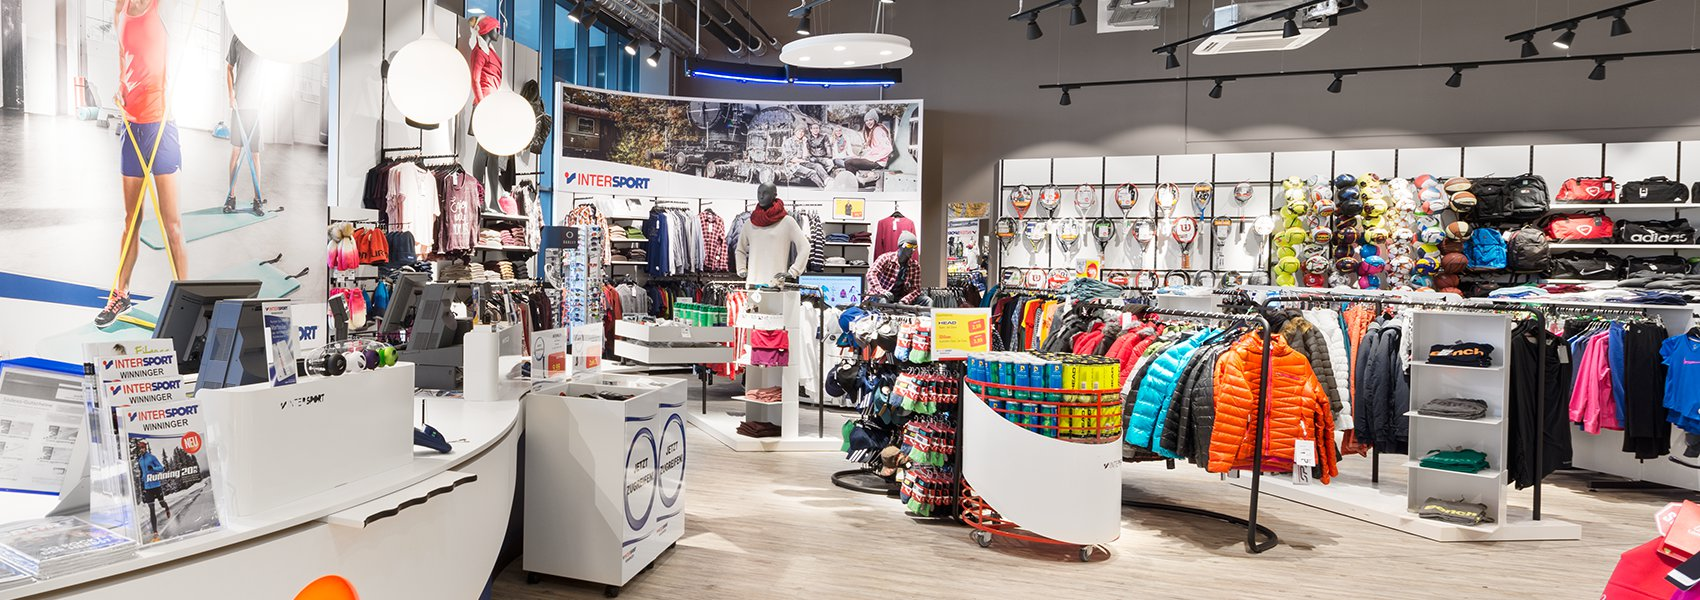 Intersport Winninger Filiale in Asten